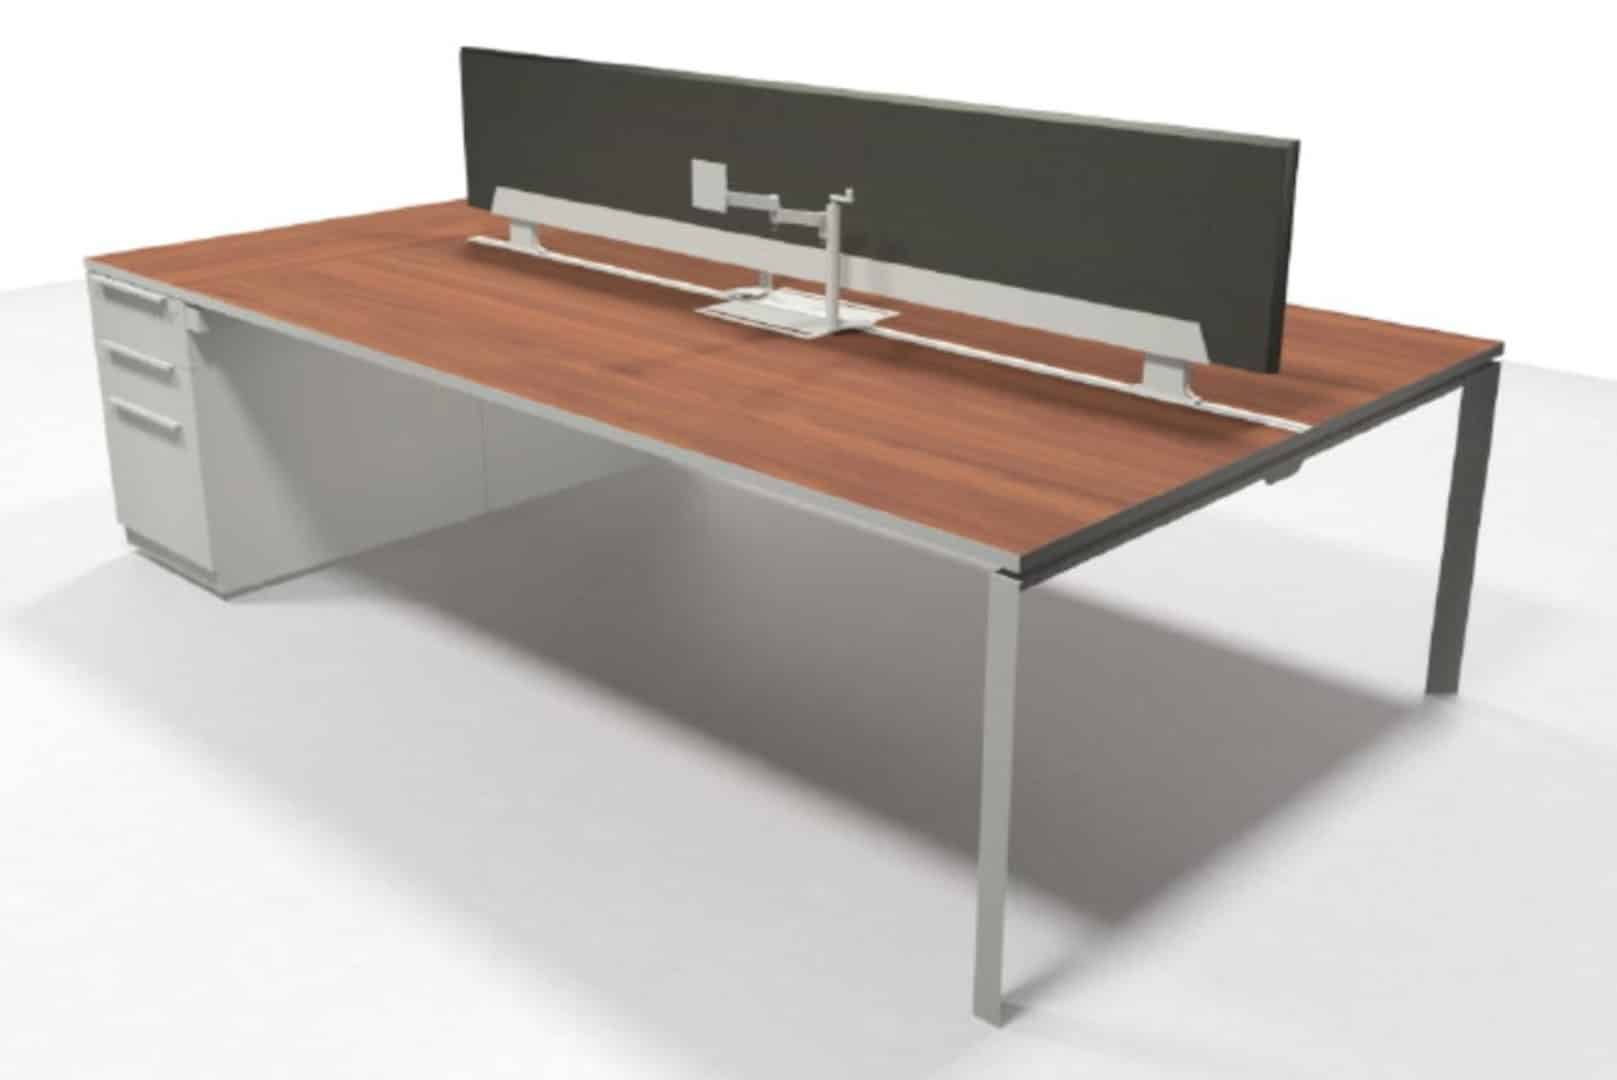 30 X72 Stand Alone Double Sided Desk With 72 X15 Fabric Tackboard And Supporting File Drawer